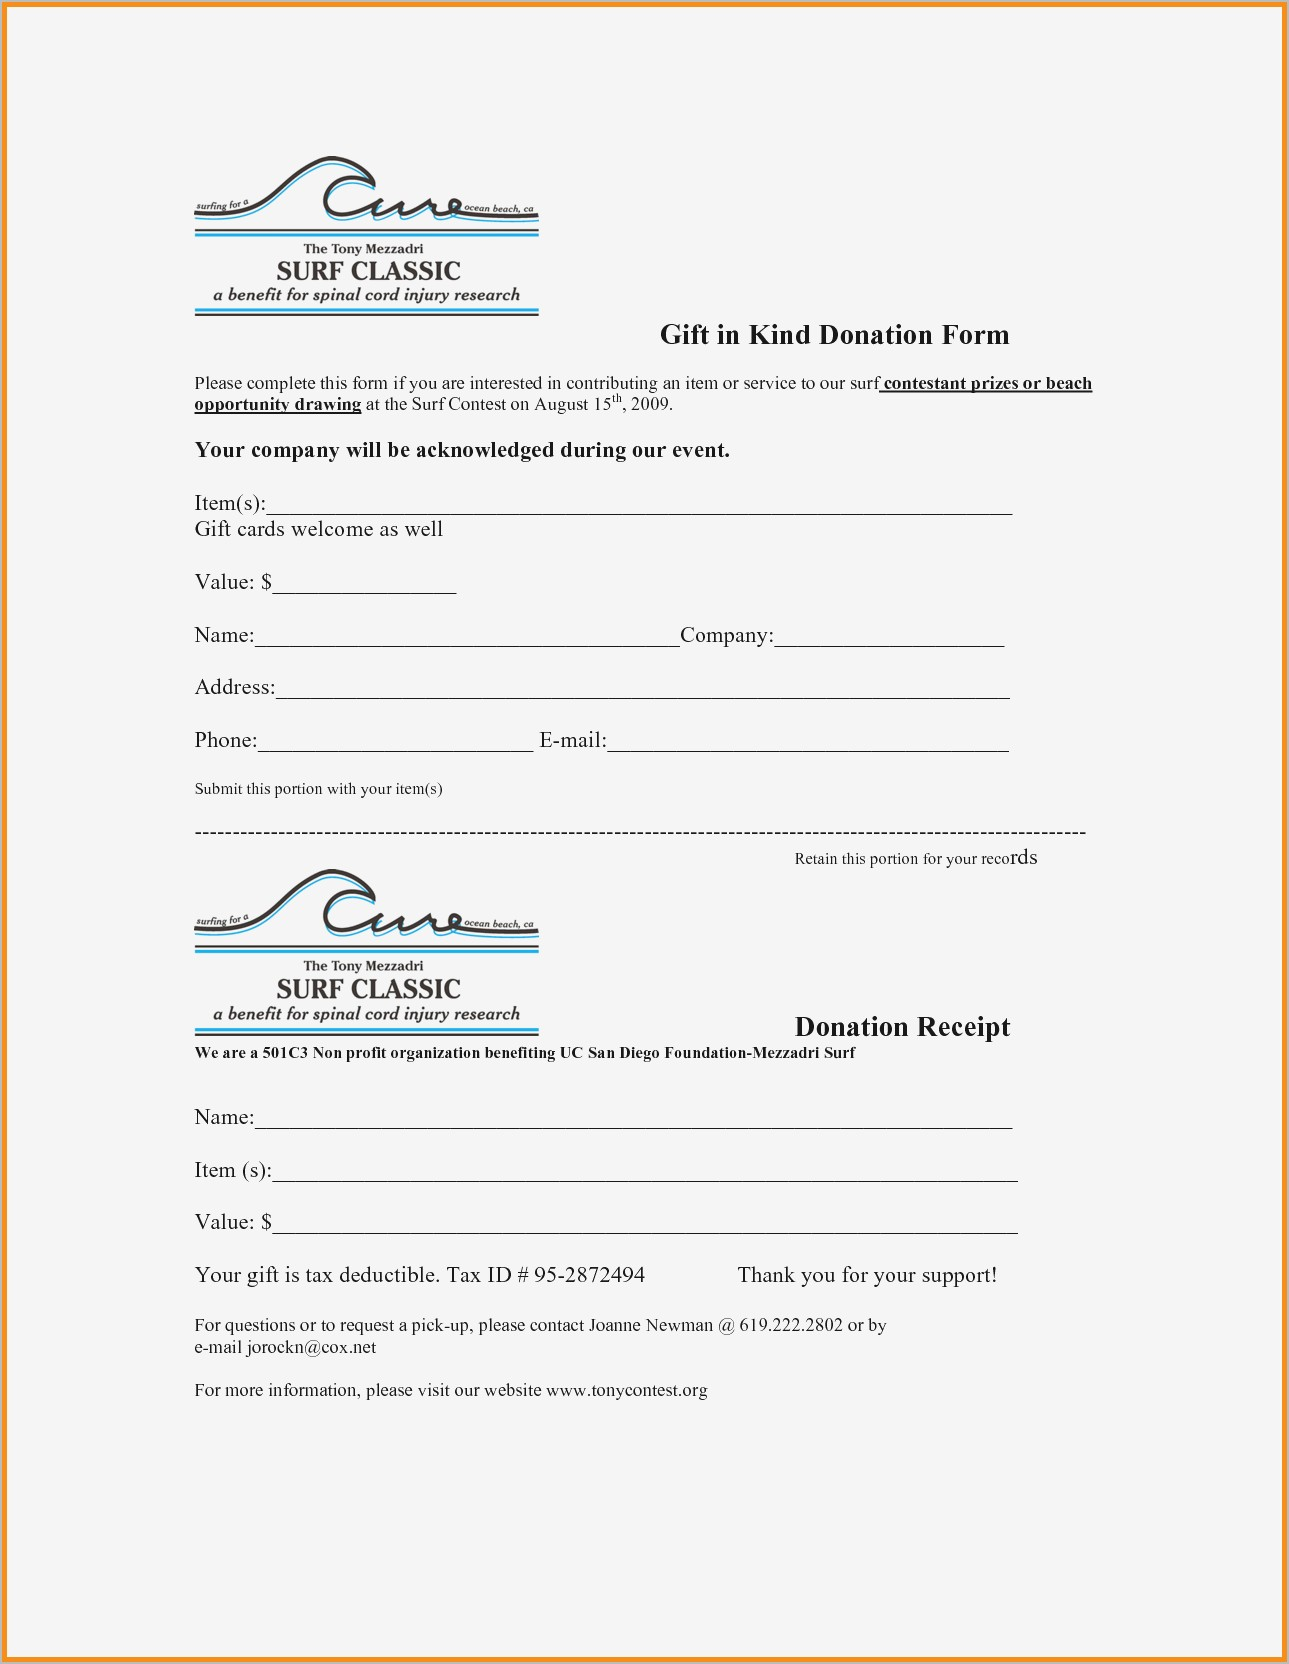 Charitable Donation Receipt Letter Template - Donation Receipt Letter Samples